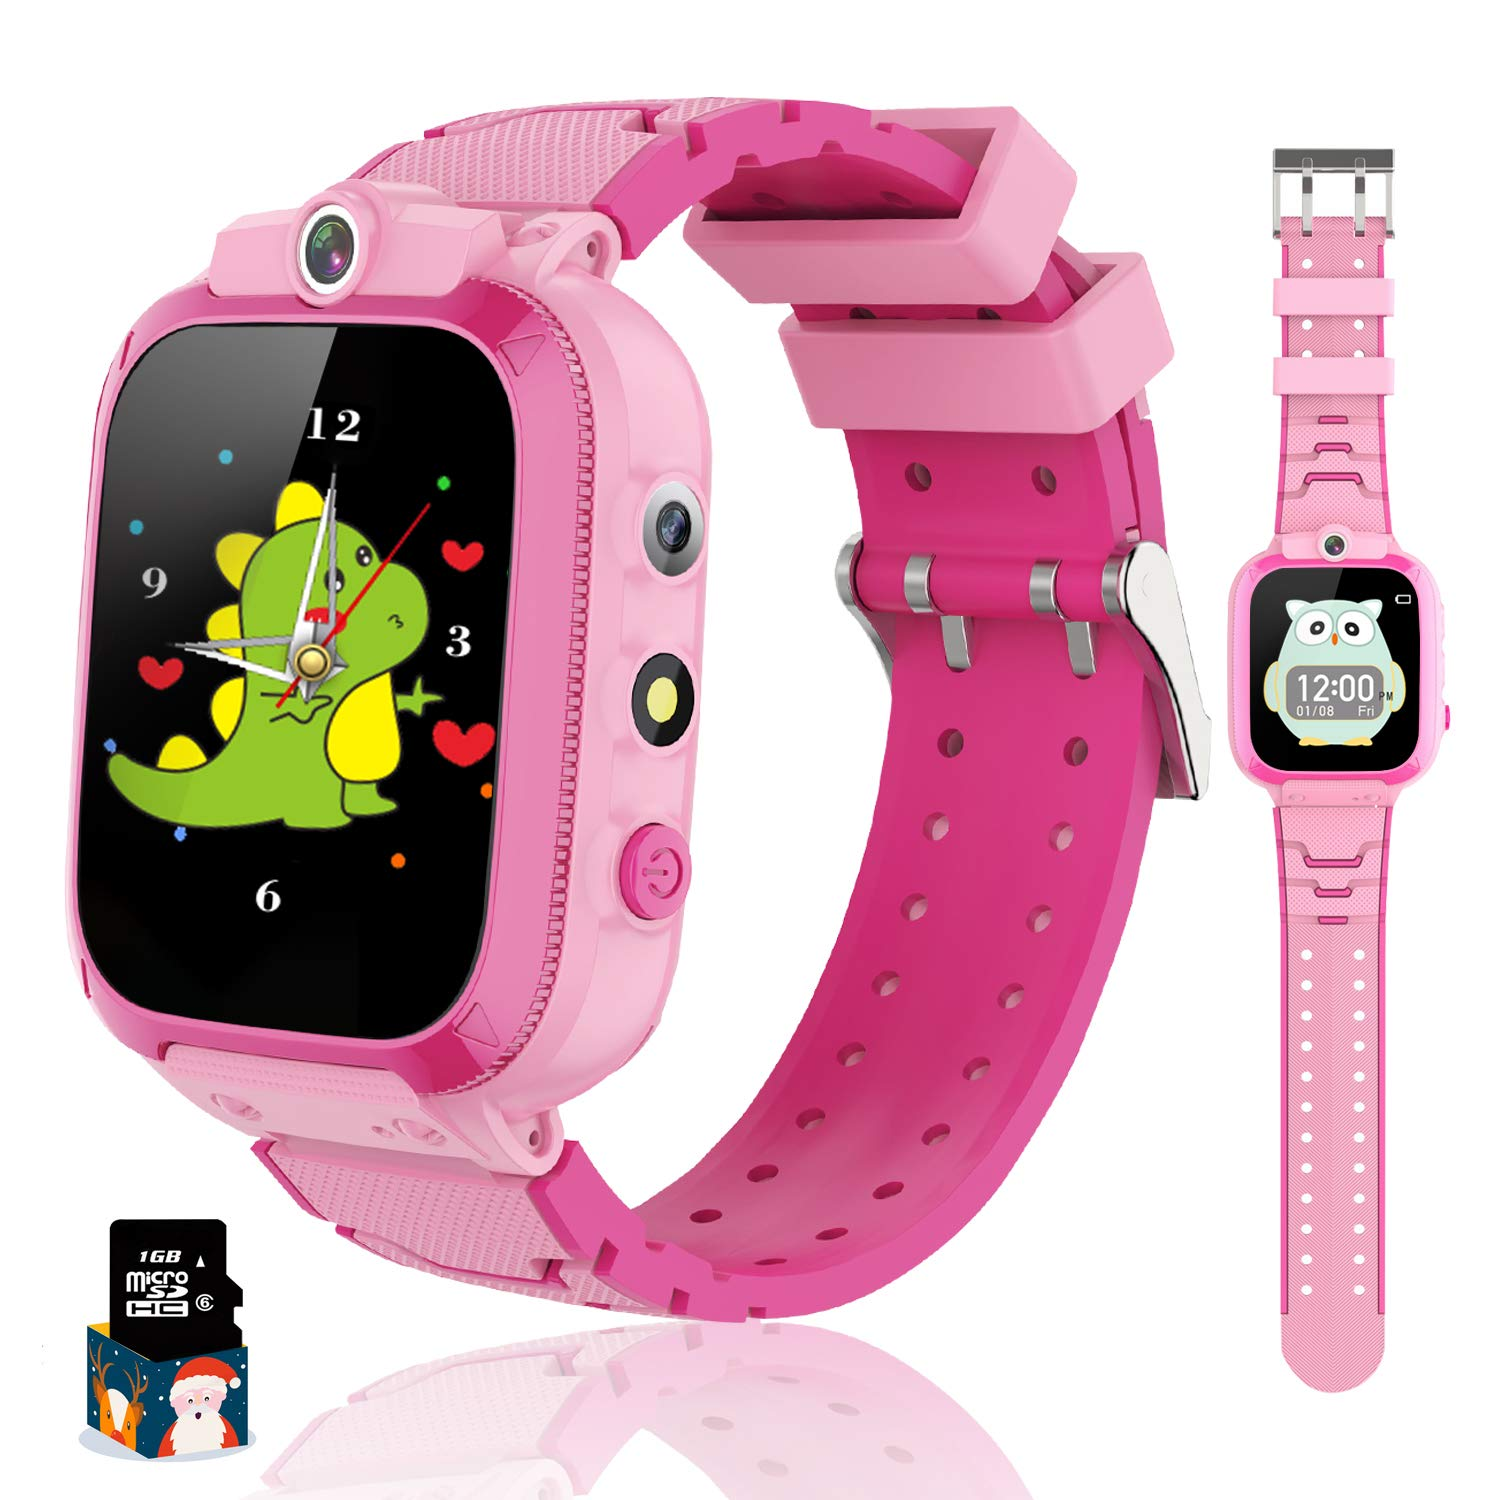 Themoemoe Kids Smart Watch for Boys Girls, Kids Music Watch Touch Screen with Dual Cameras 14 Games Pedometer Sport Alarm Clock Flashlight, Kids Watch for Childern Birthday Gifts 3-12(Pink)